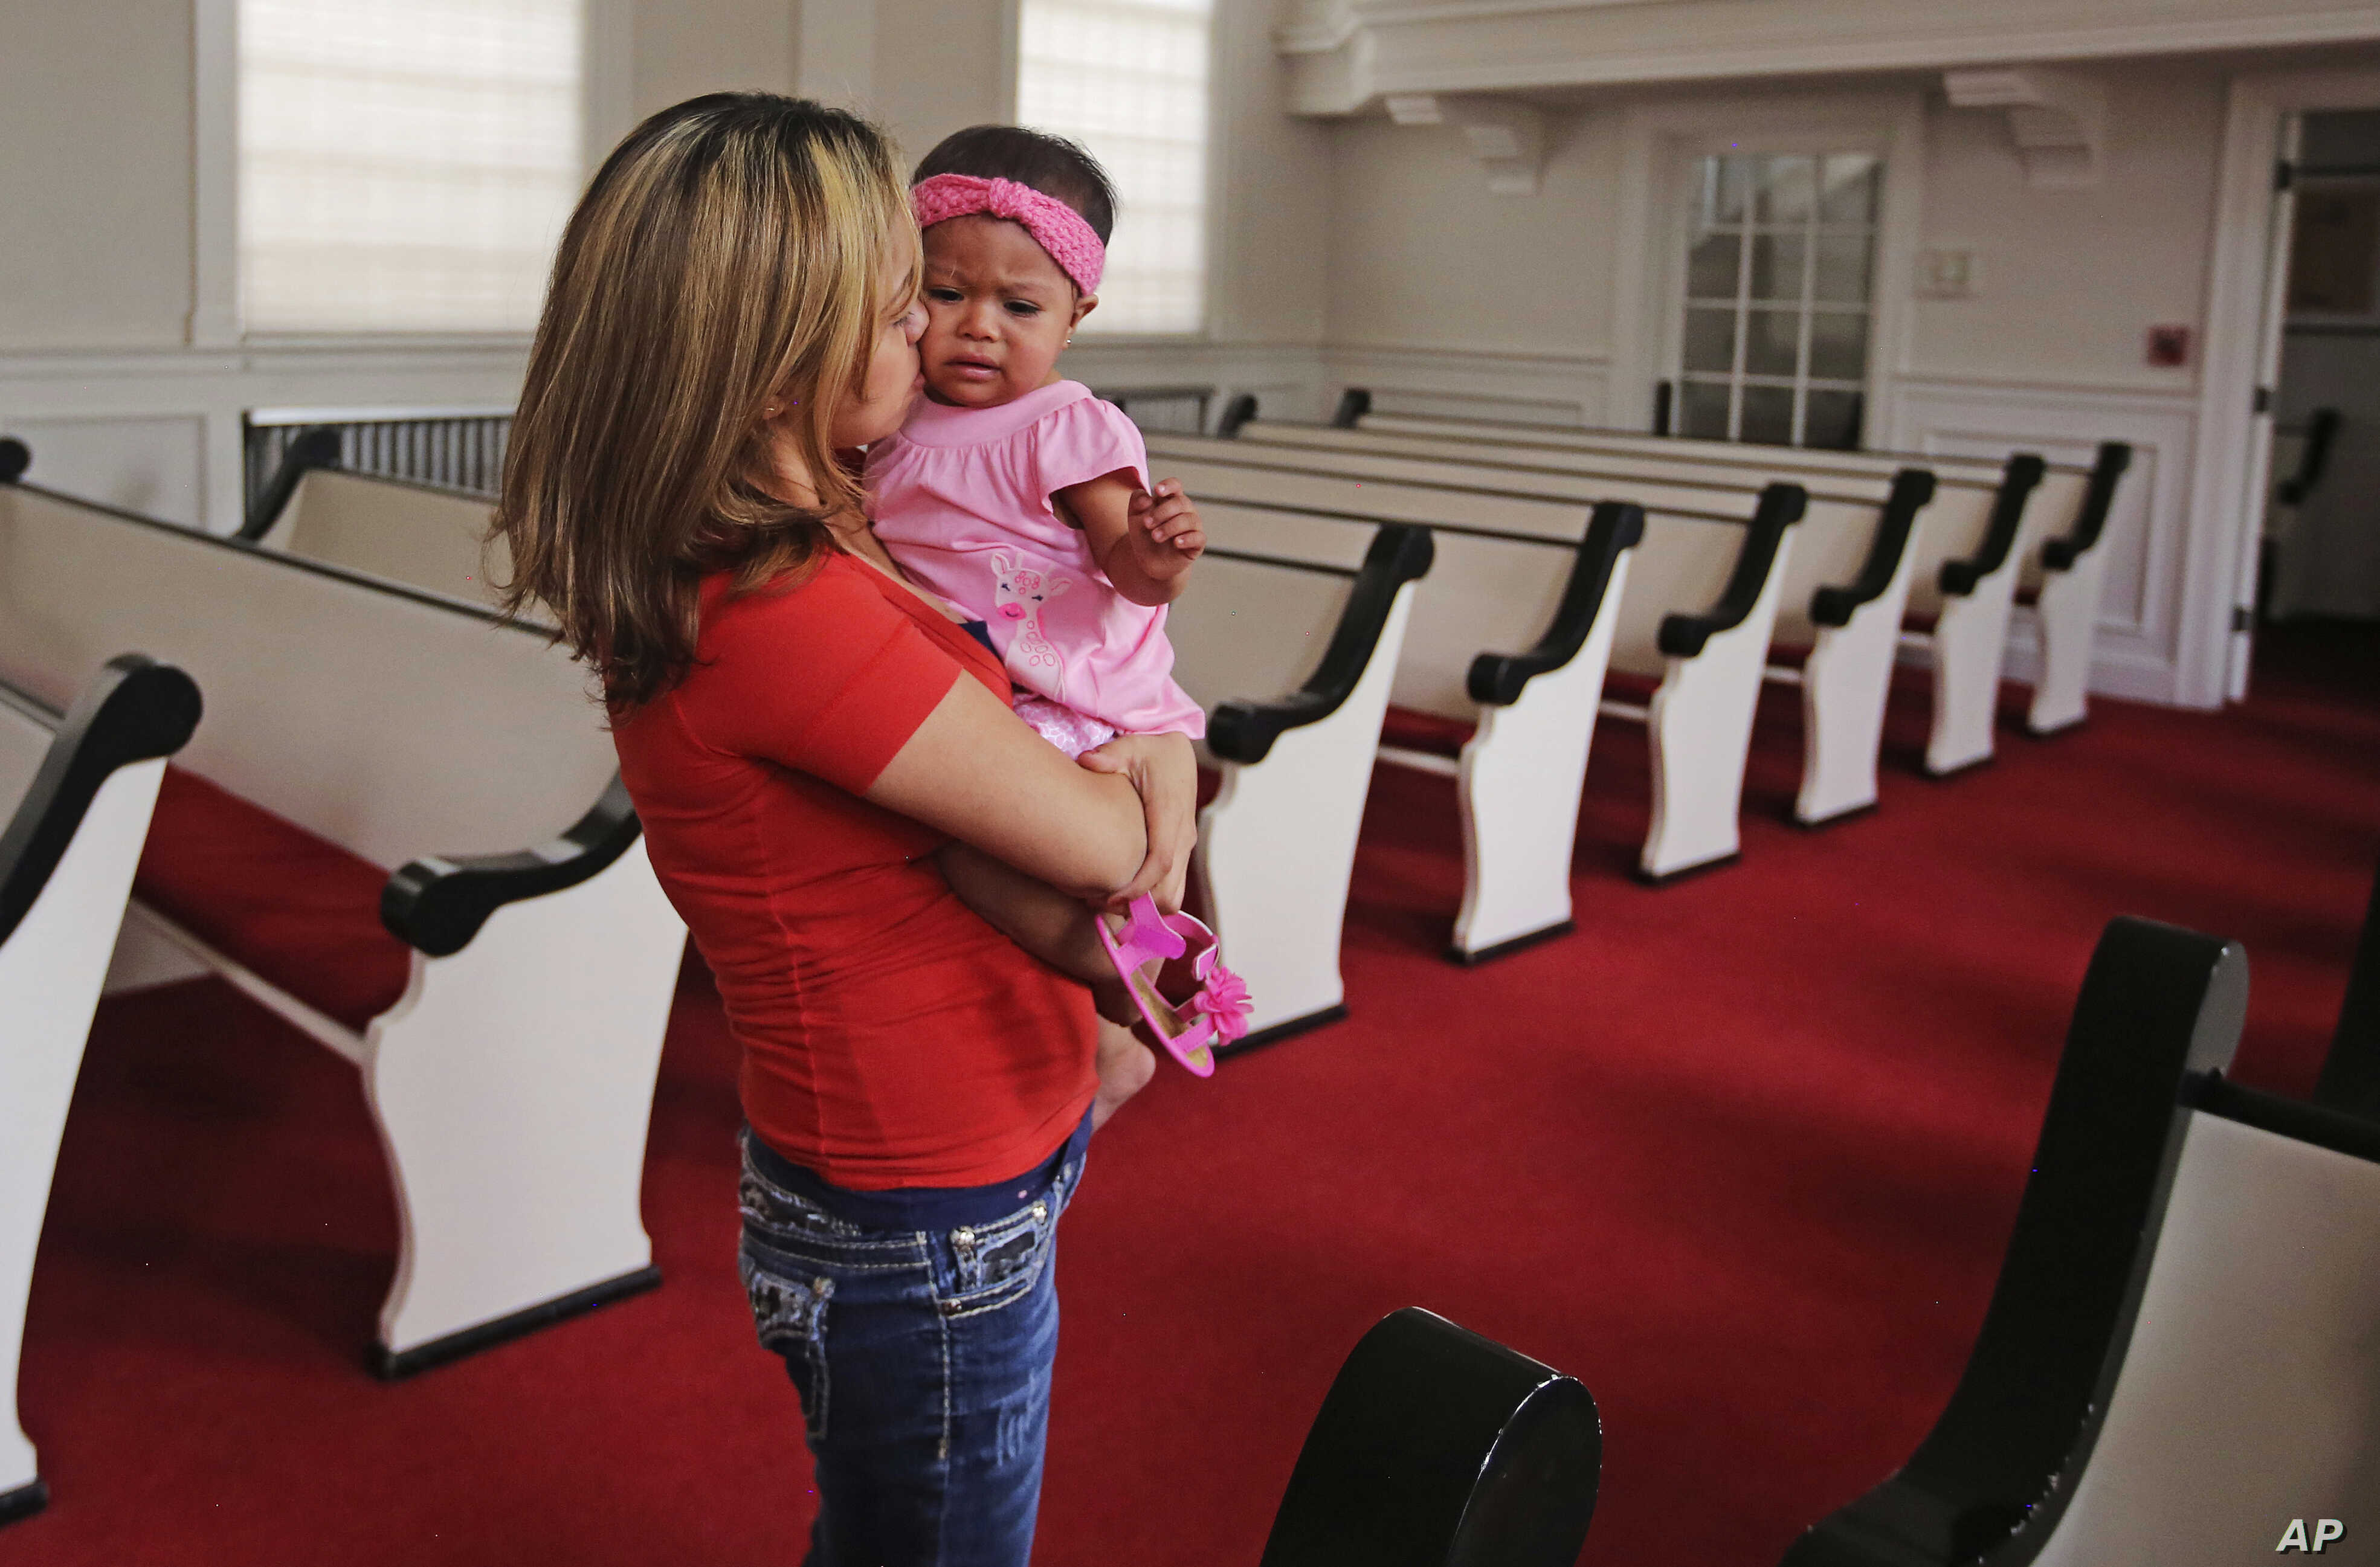 Vicky Chavez comforts her daughter Issabella in the First Unitarian Church, in Salt Lake City, Utah, May 31, 2018. Chavez says seeing fellow Central Americans separated from their children at the U.S.-Mexico border makes her intent on trying to fight...